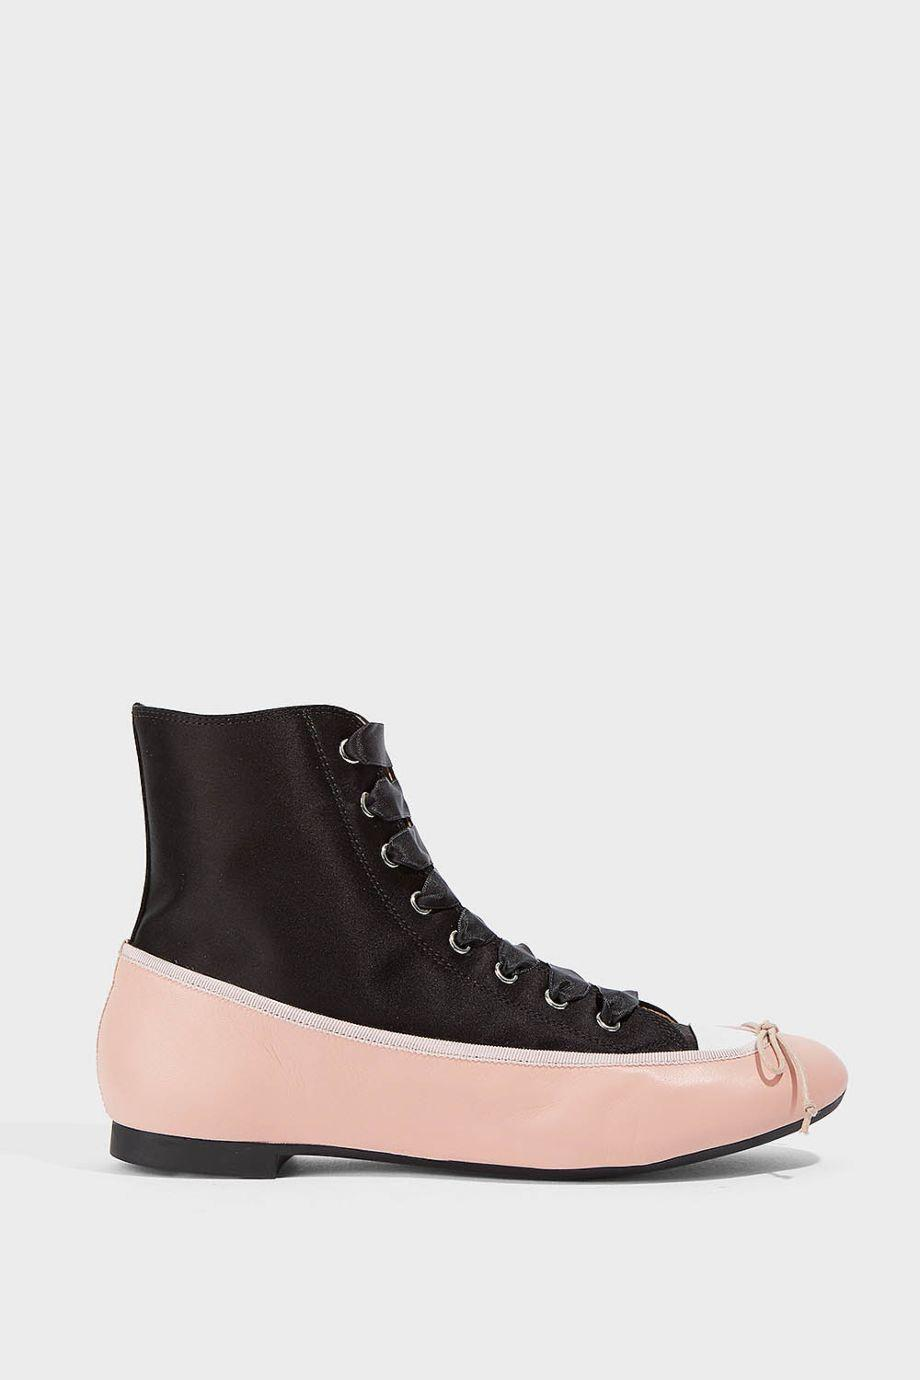 Marco De Vincenzo Satin And Leather Trainers In Black, Light-Pink